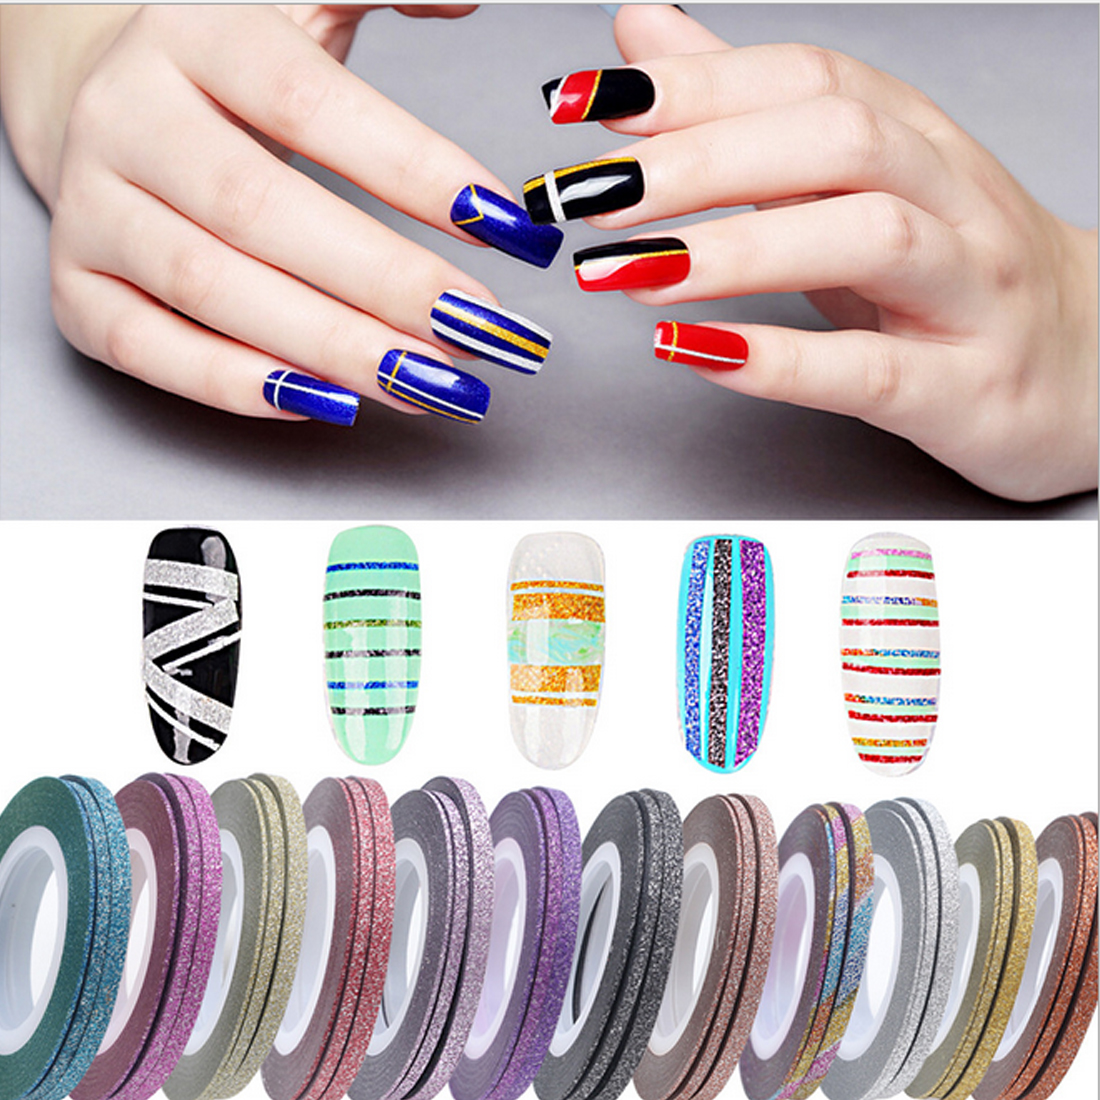 Nail Striping Tape Walmart: Aliexpress.com : Buy Hot Sale 1 Rolls 3mm Glitter Nail Art